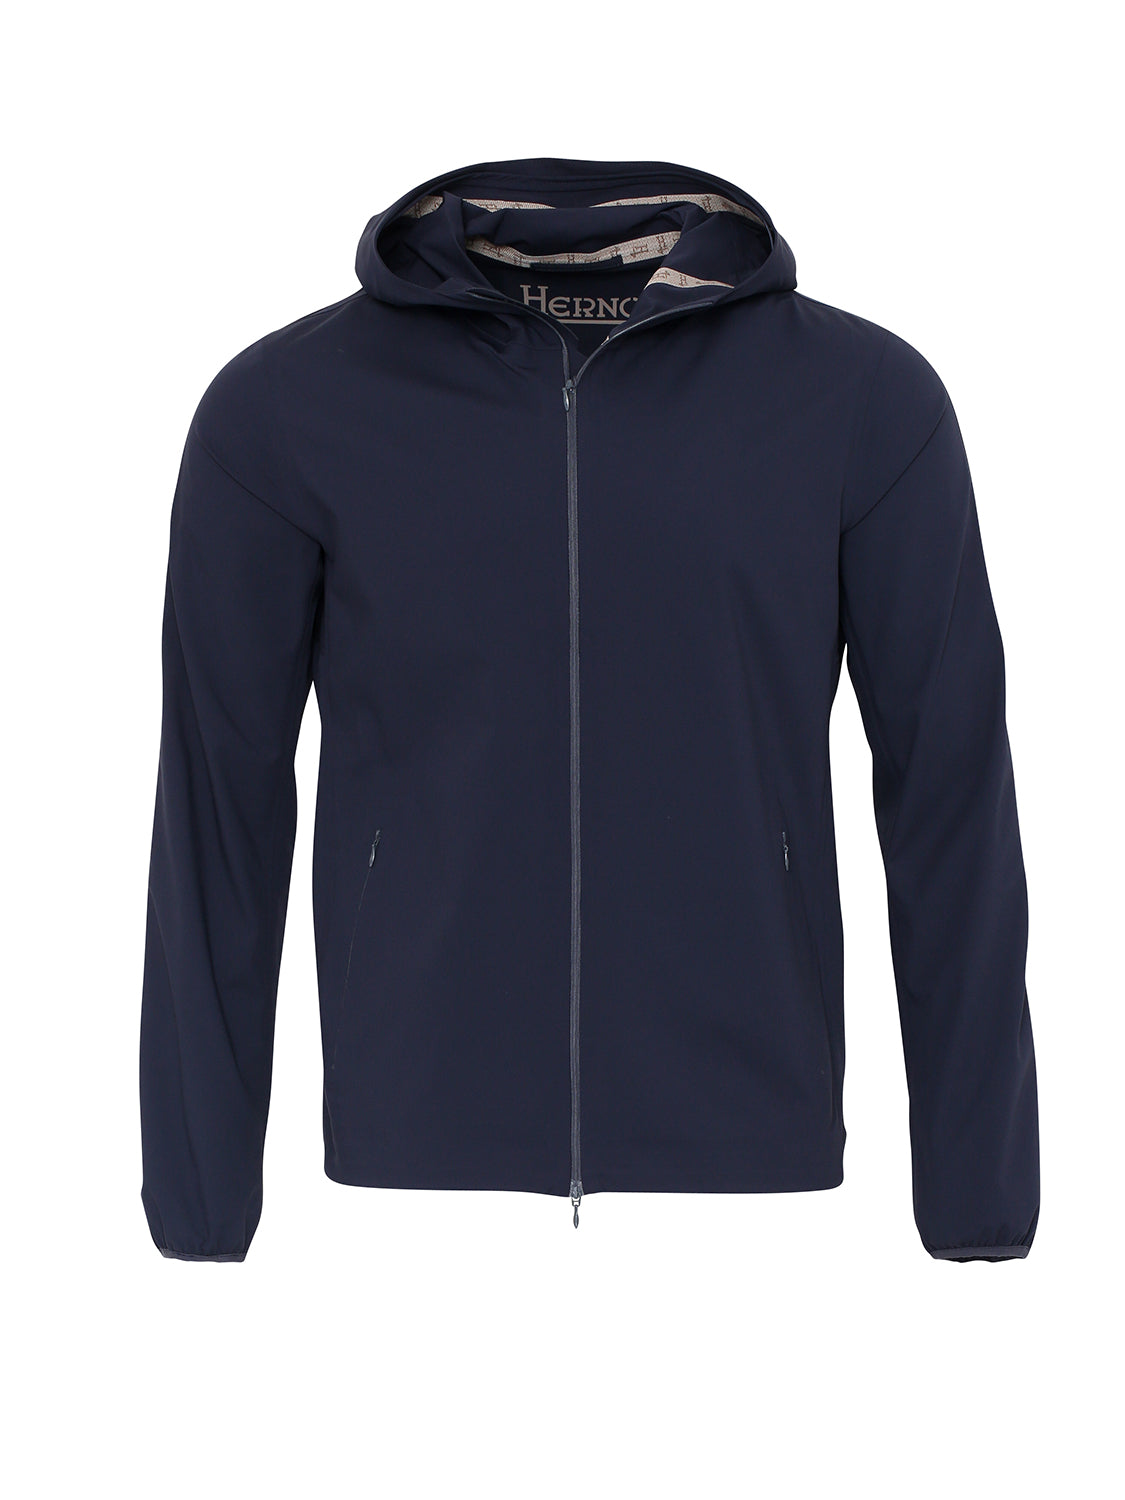 Herno Hooded Light Weight Jacket (Navy) - Union 22